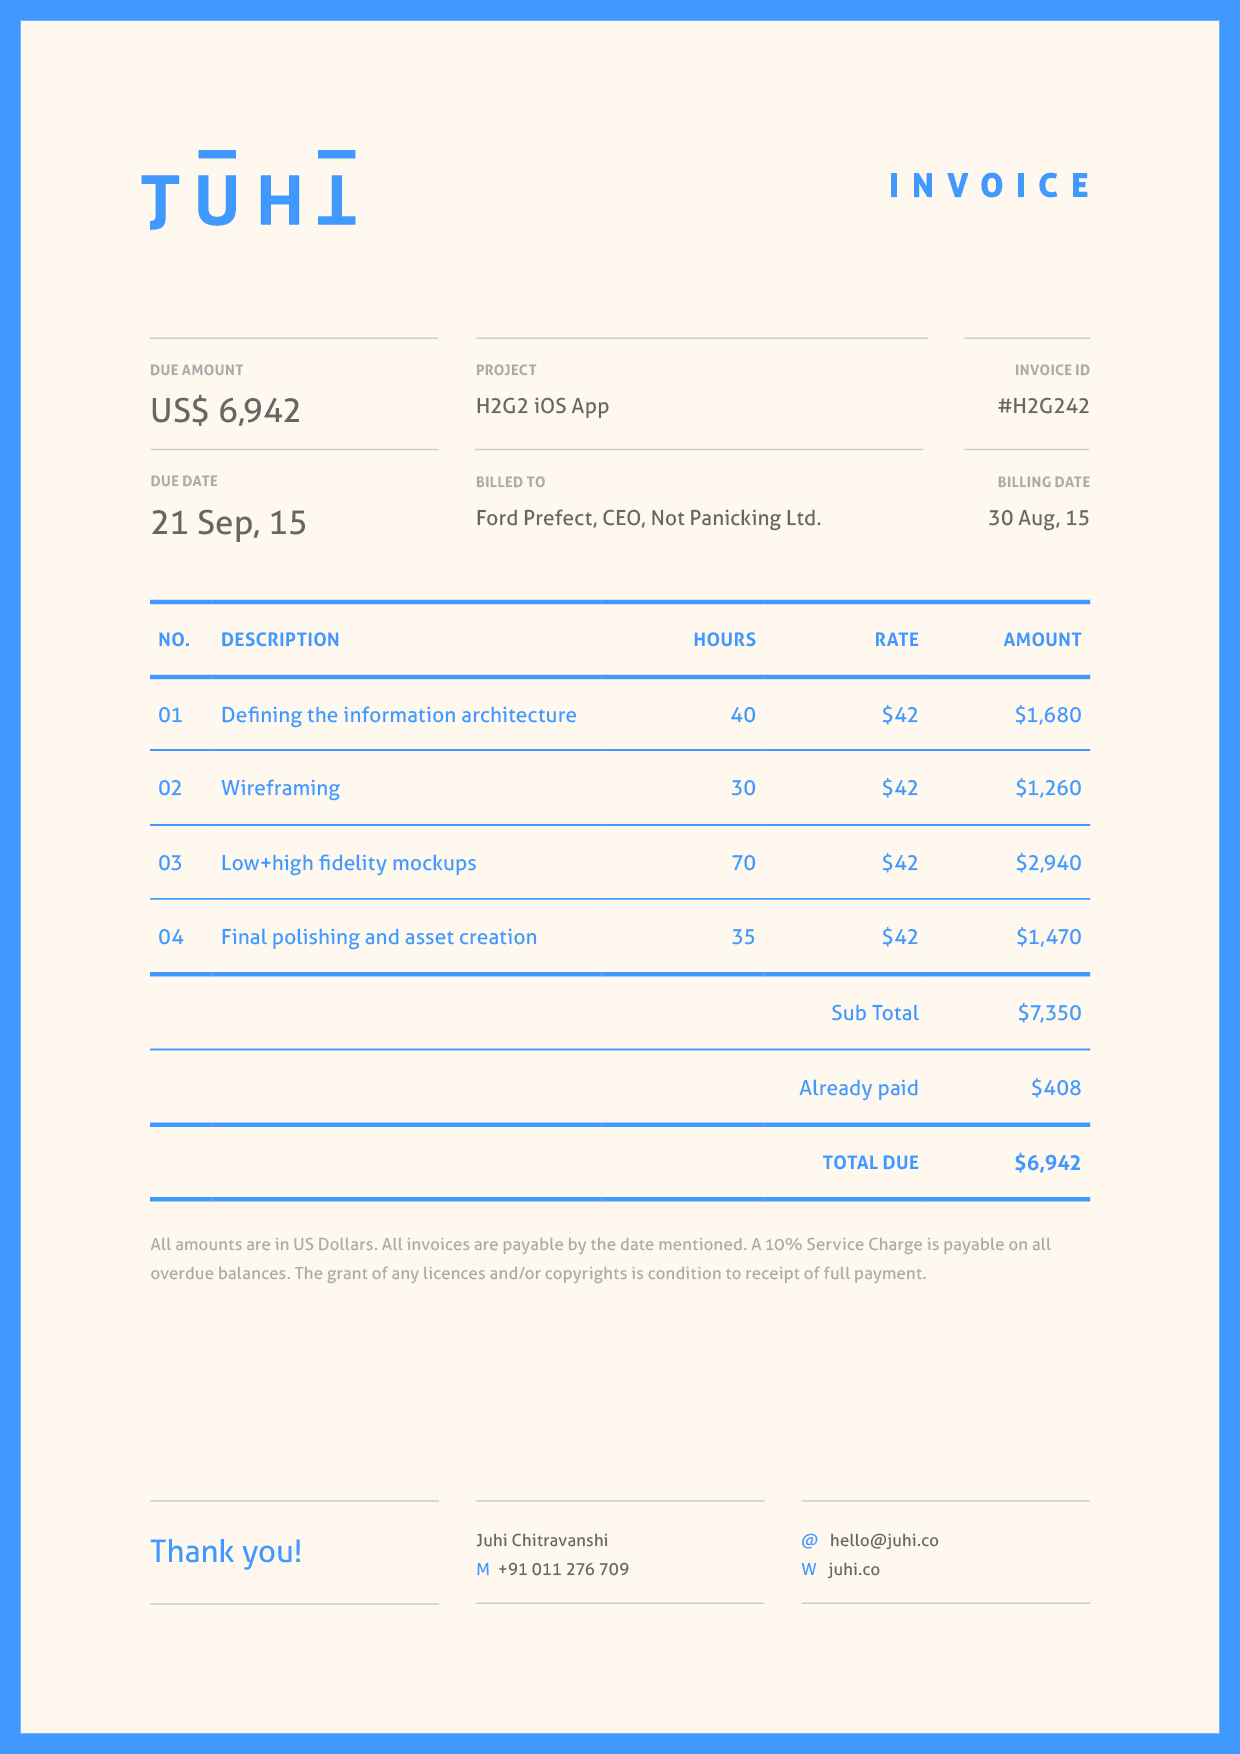 Pigbrotherus  Pretty Dont Hold Back On Your Invoice  Inspiring Designs  With Great Invoice By Juhi Chitravanshi Follow With Cute Dj Invoice Template Also Free Online Invoice Templates In Addition Blank Invoice Template For Microsoft Word And Invoice Manager App As Well As Timesheet Invoice Template Additionally Construction Invoice Sample From Inspirationfeedcom With Pigbrotherus  Great Dont Hold Back On Your Invoice  Inspiring Designs  With Cute Invoice By Juhi Chitravanshi Follow And Pretty Dj Invoice Template Also Free Online Invoice Templates In Addition Blank Invoice Template For Microsoft Word From Inspirationfeedcom